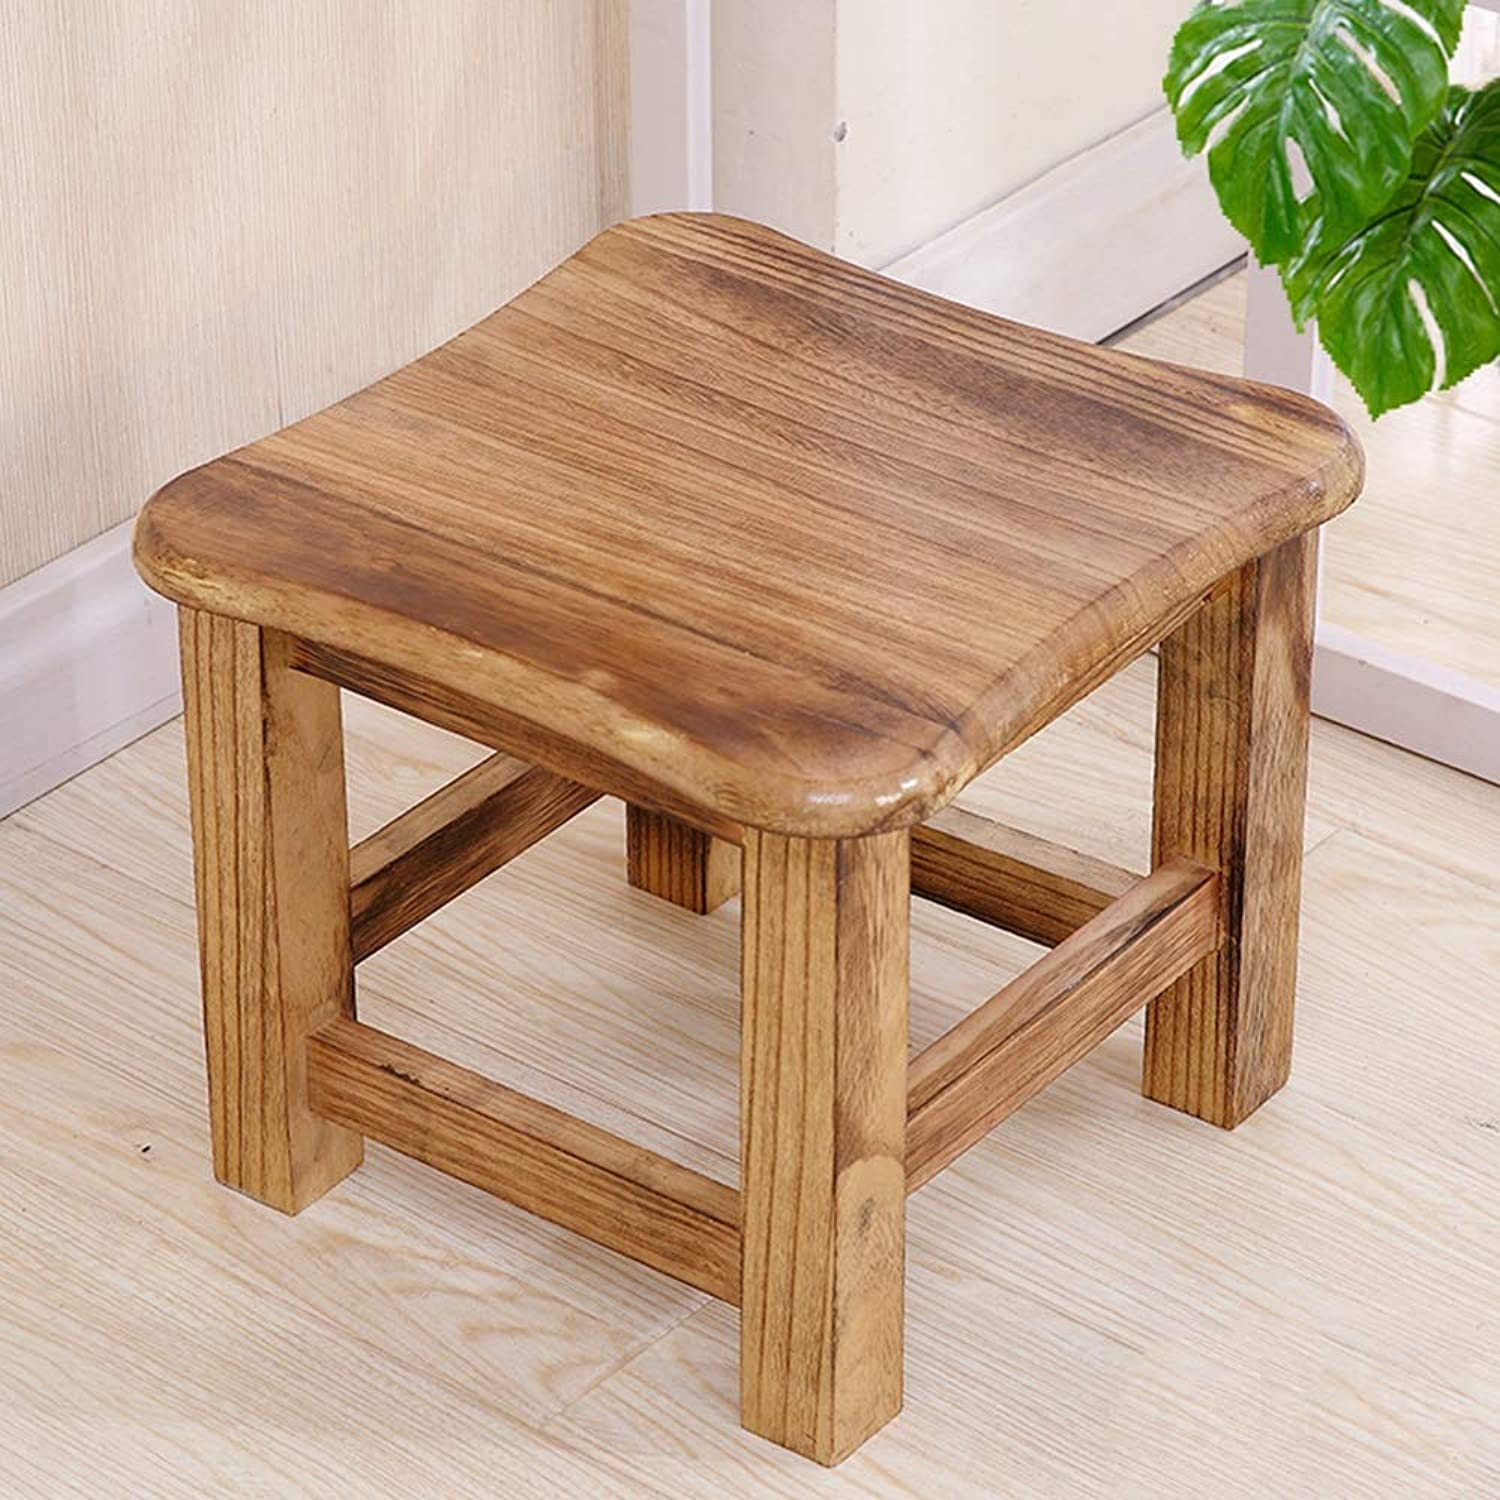 DUXX Stool, Home Stool Solid Wood Creative Bench Small Square Stool Short shoes Bench Living Room Simple Modern Wood Coffee Table Stool (color   D)